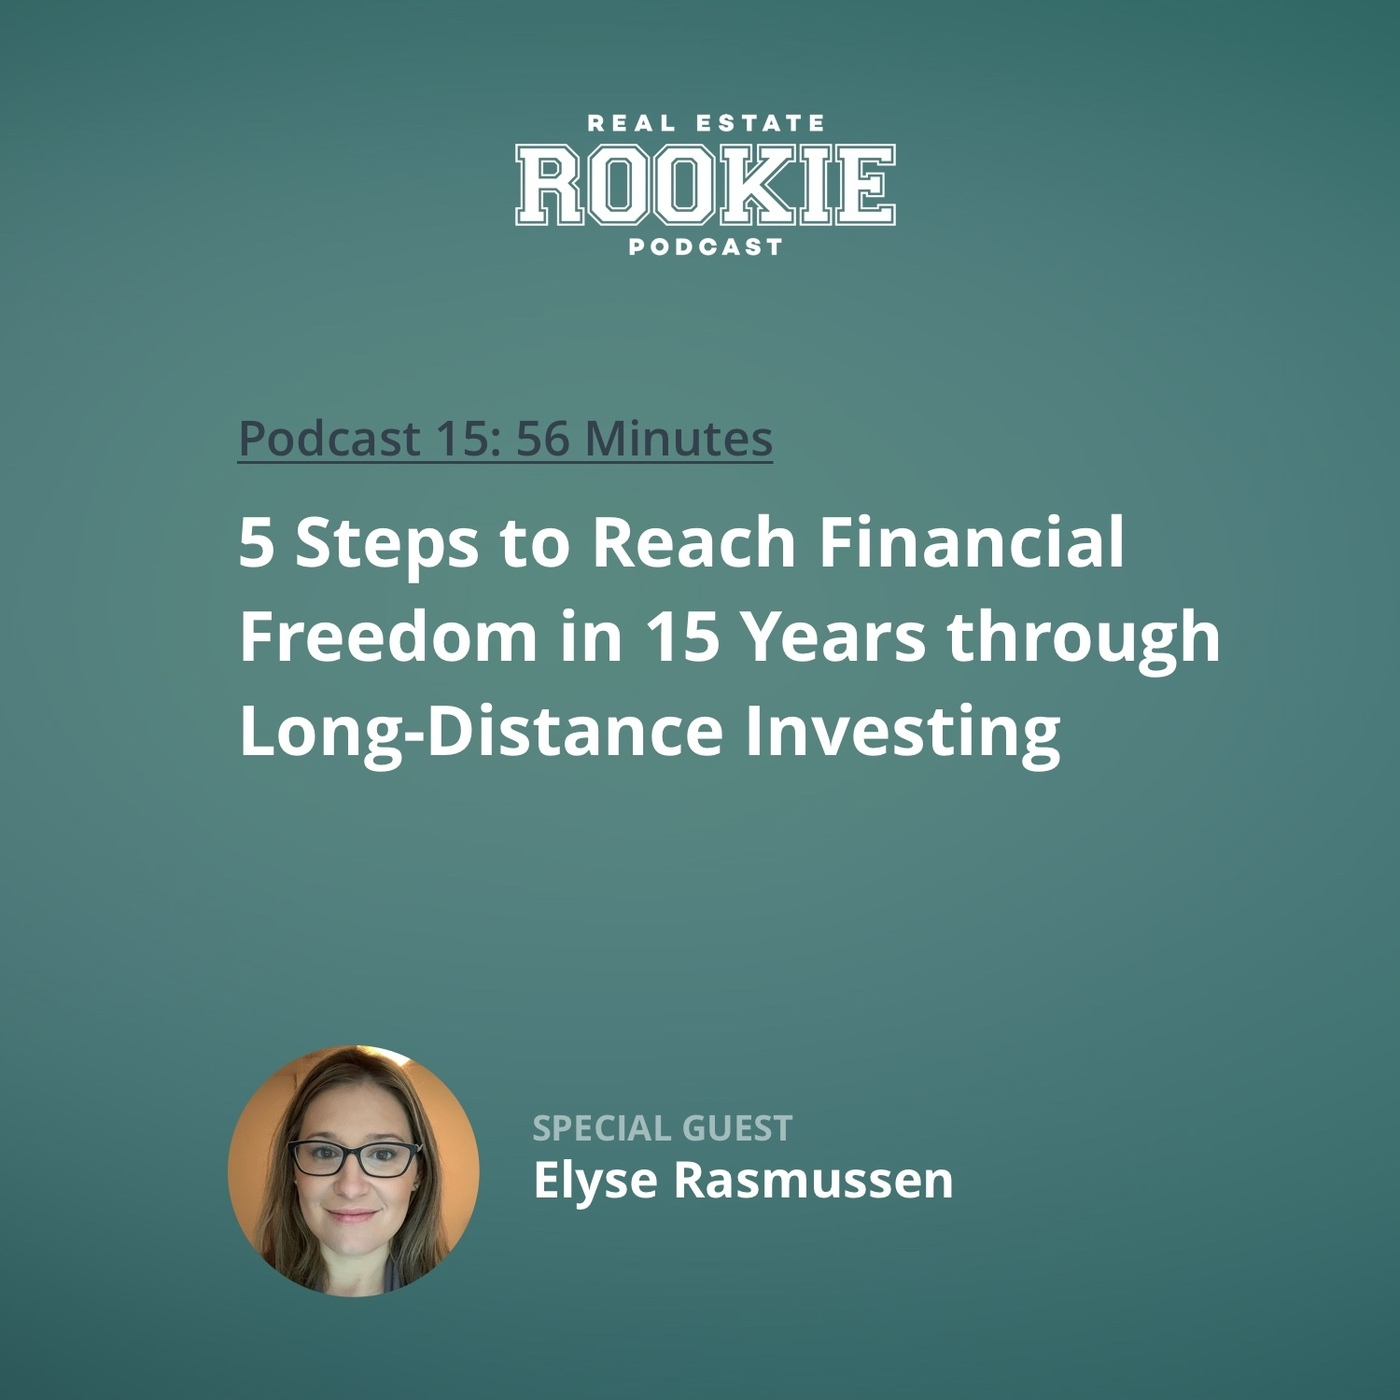 5 Steps to Reach Financial Freedom in 15 Years Through Long-Distance Investing With Elyse Rasmussen